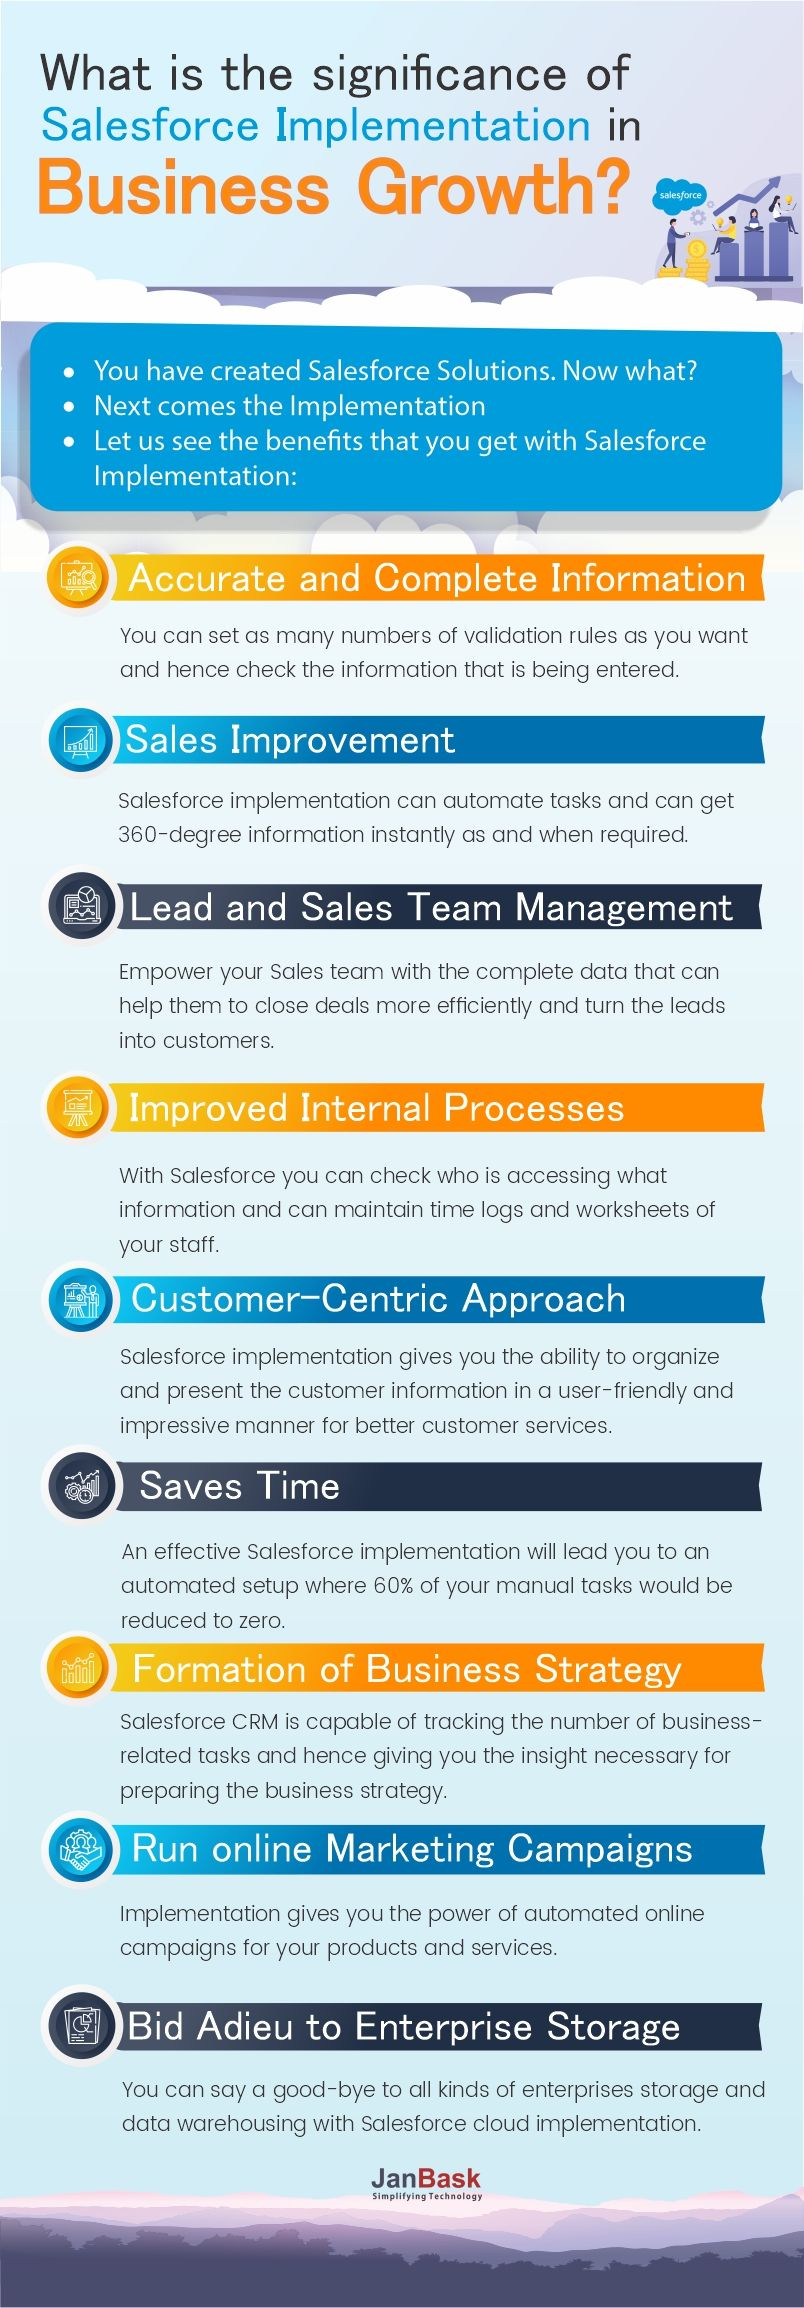 What is the Significance of Salesforce Implementation in Business Growth?